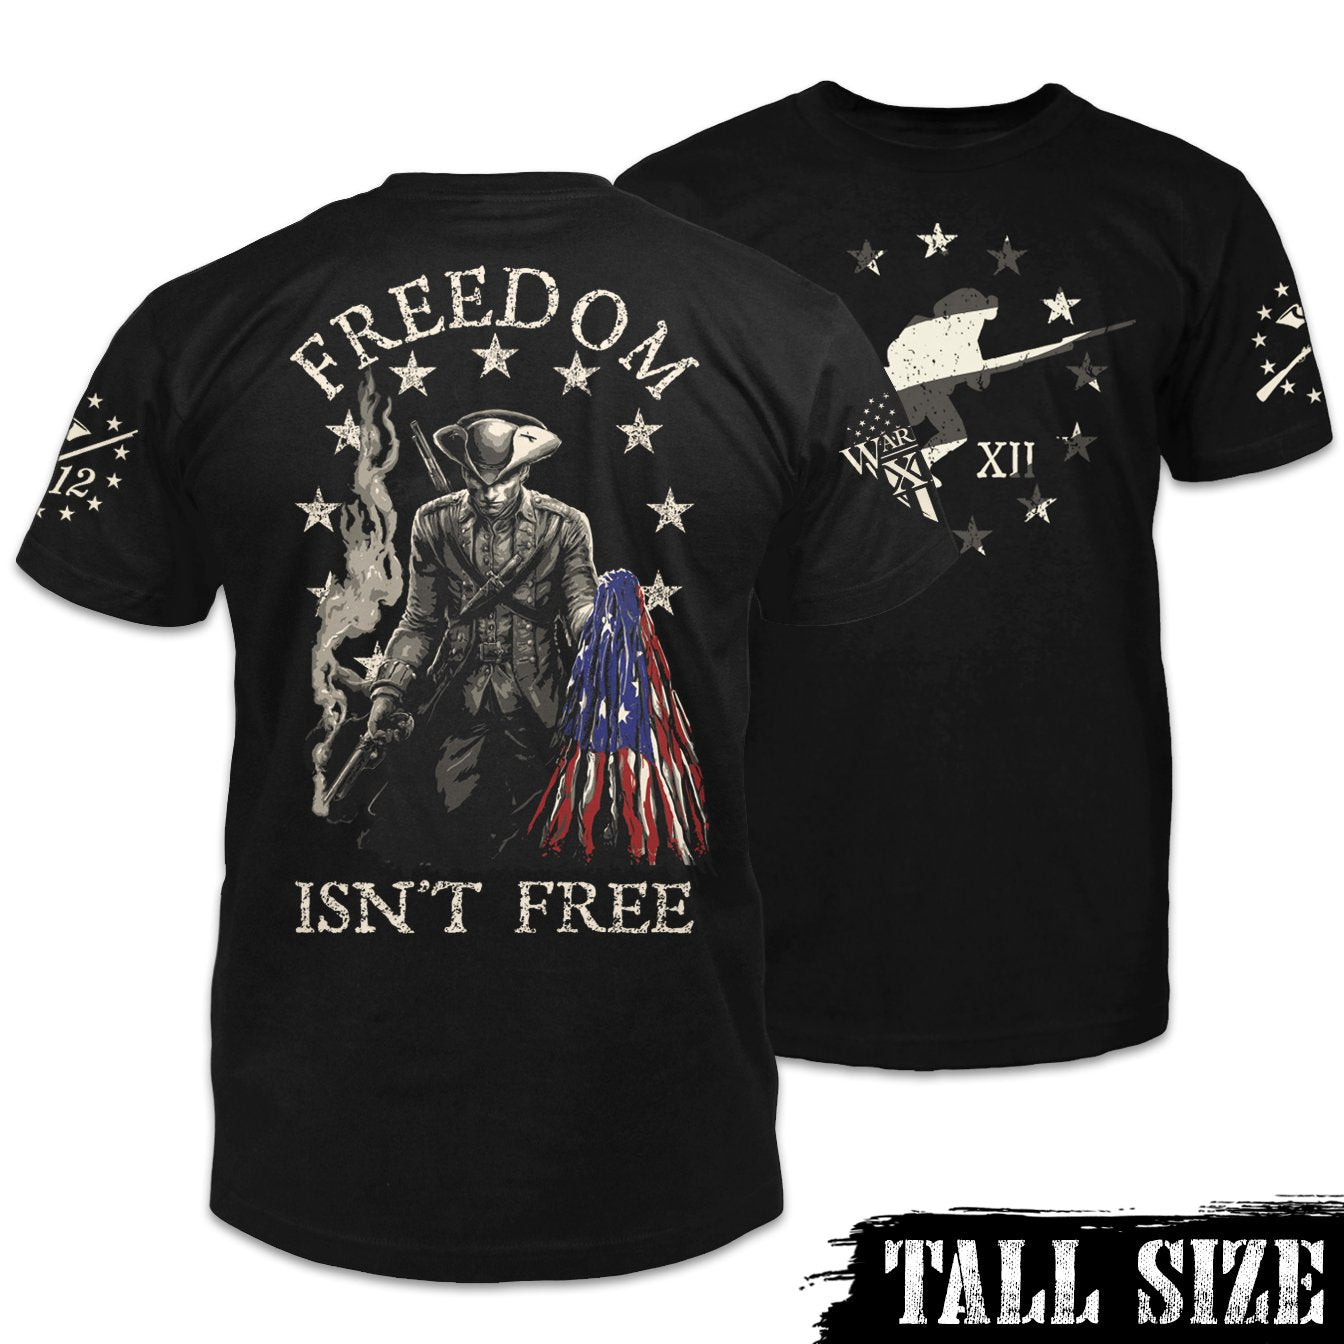 Freedom Isn't Free Tall Size